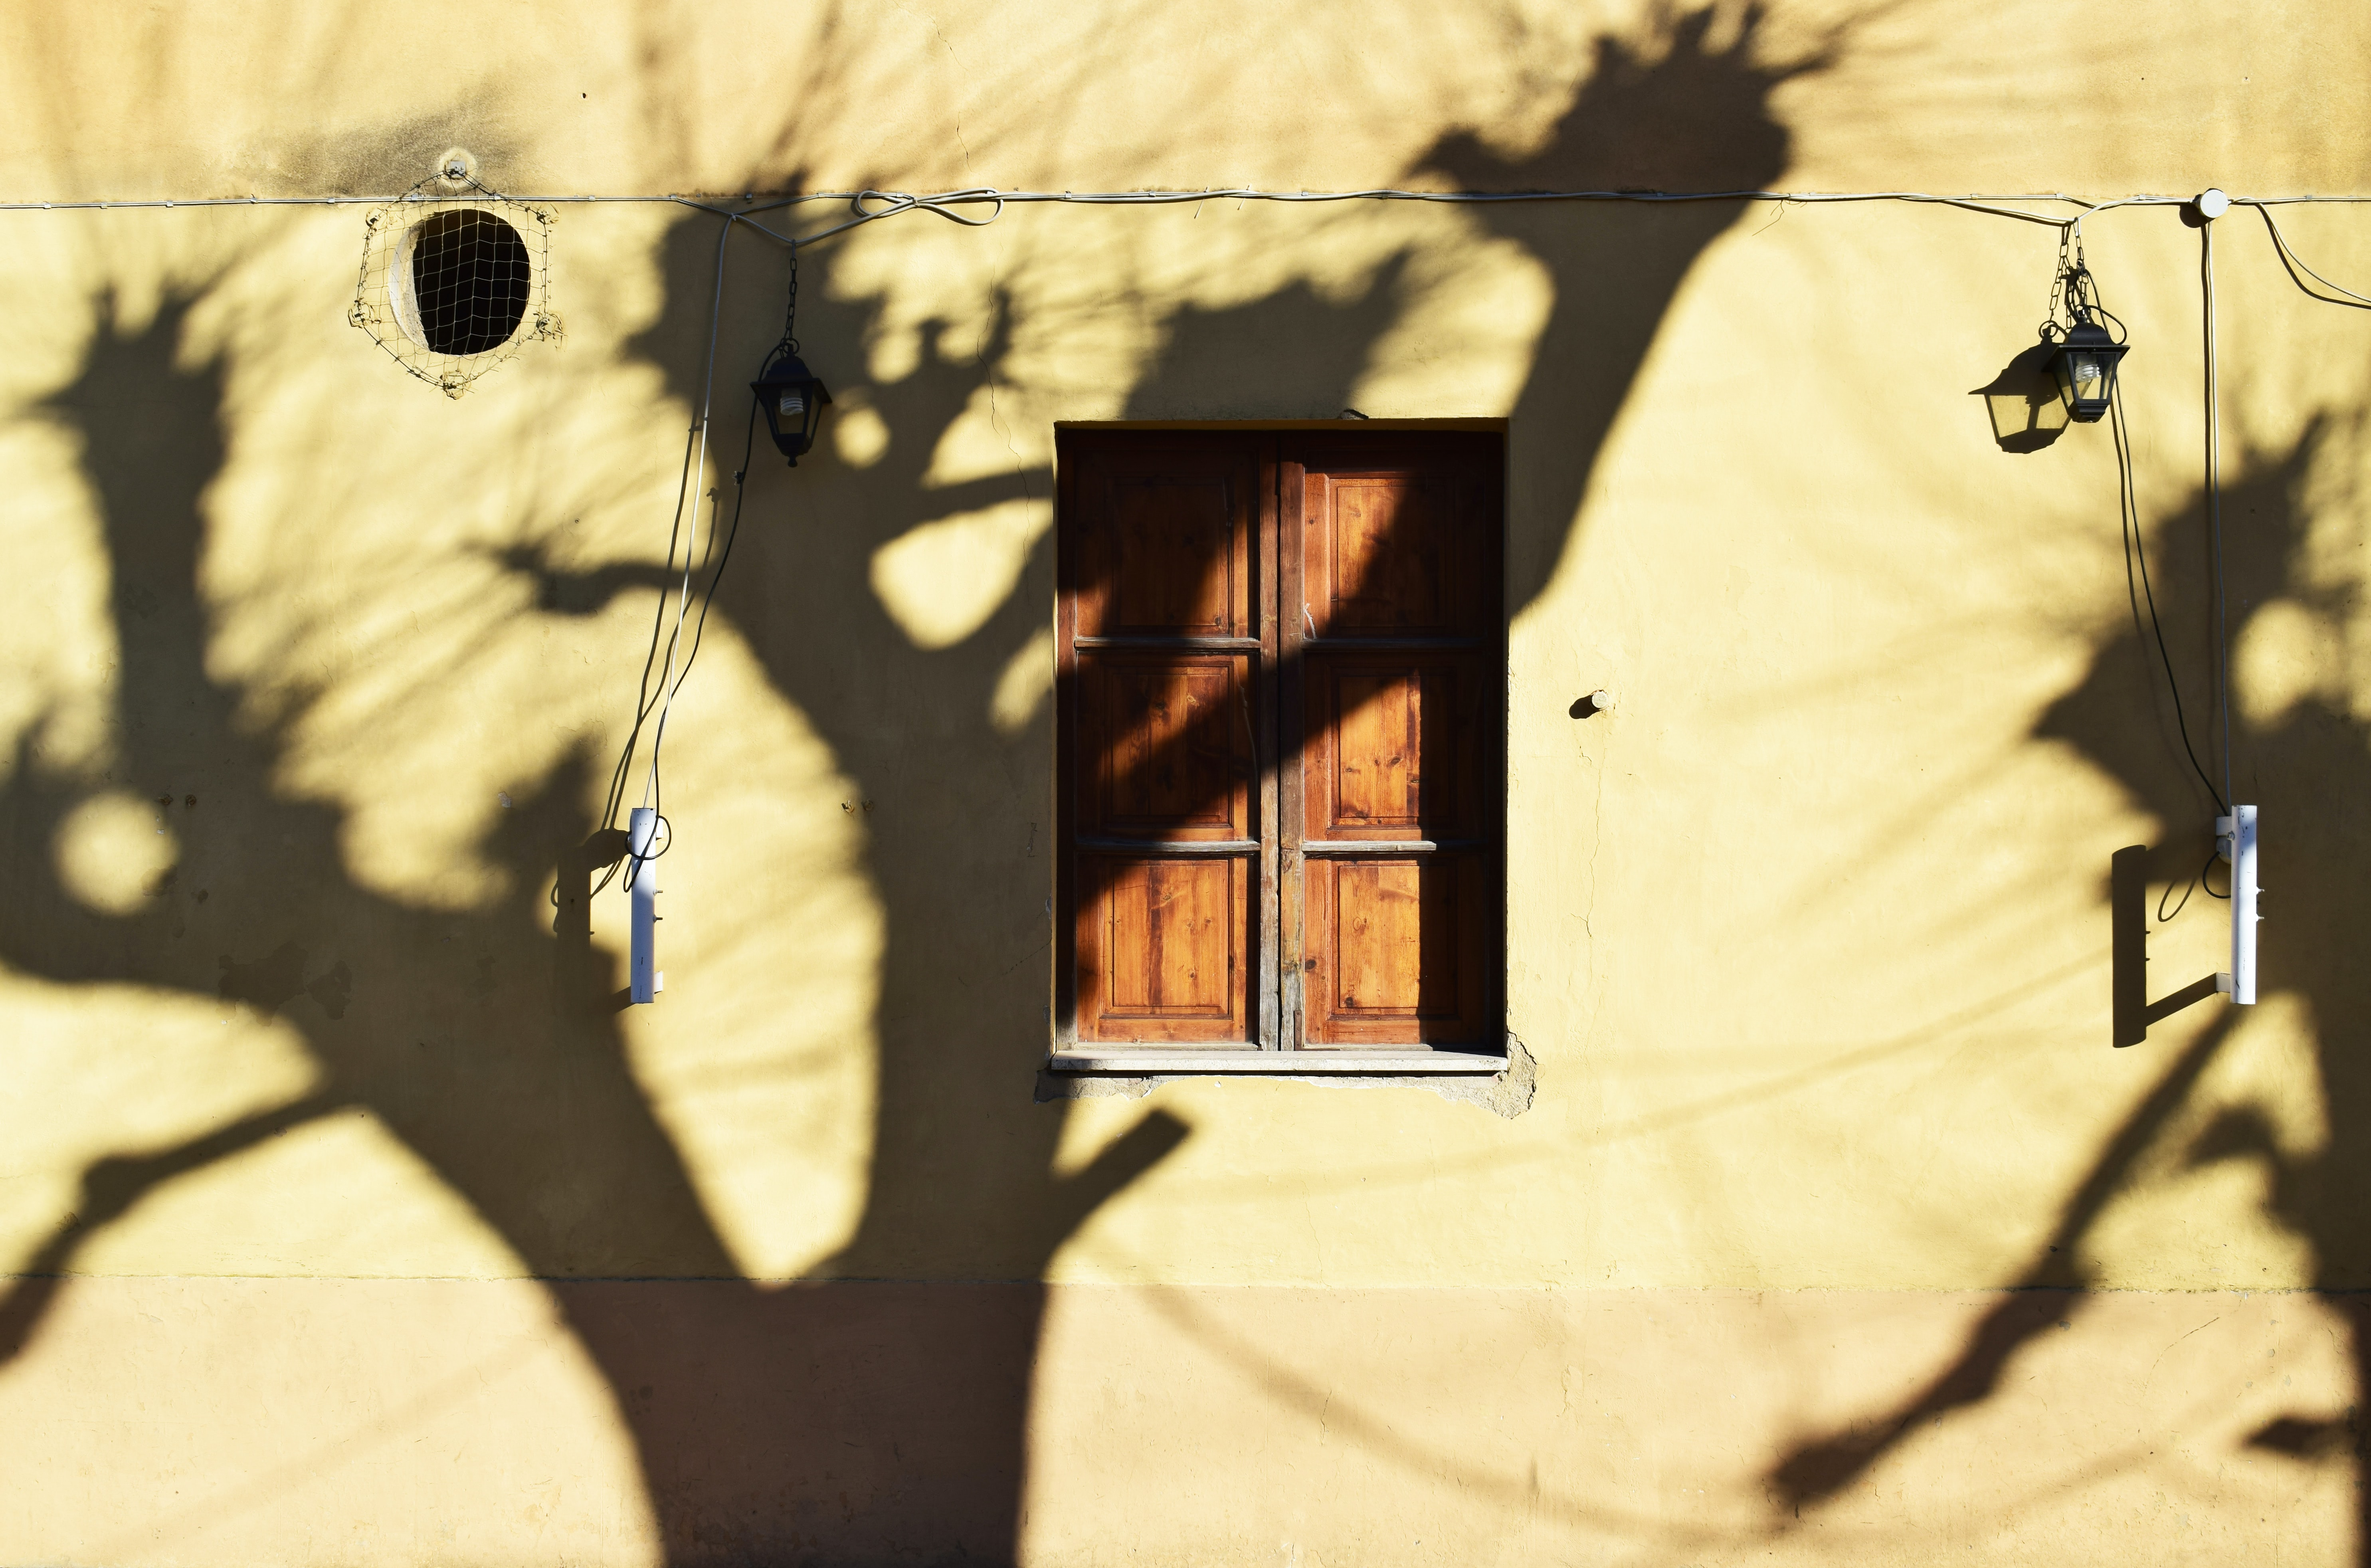 shadow of trees reflecting on beige wall